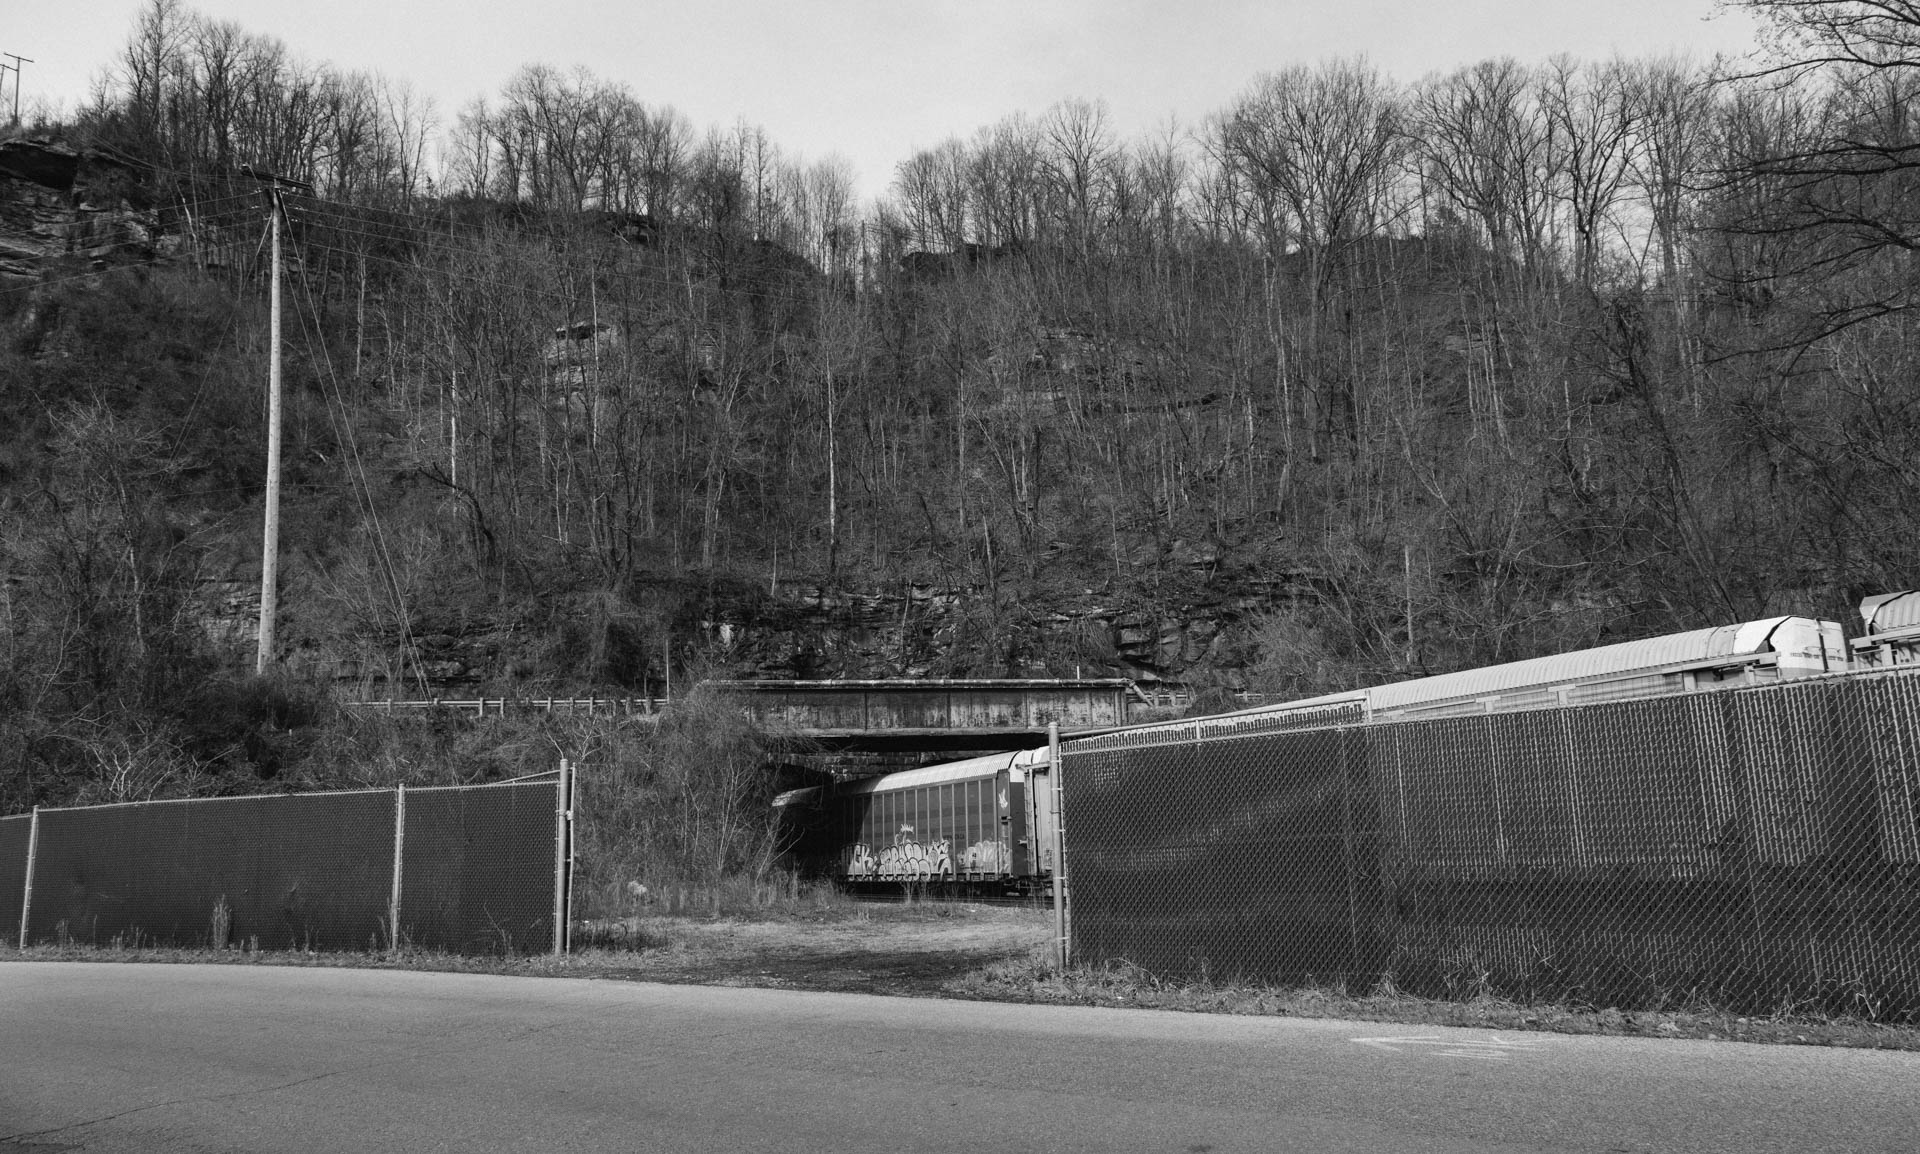 ns-autoracks-fenced-mountain-tunnel-williamson-wv-2022